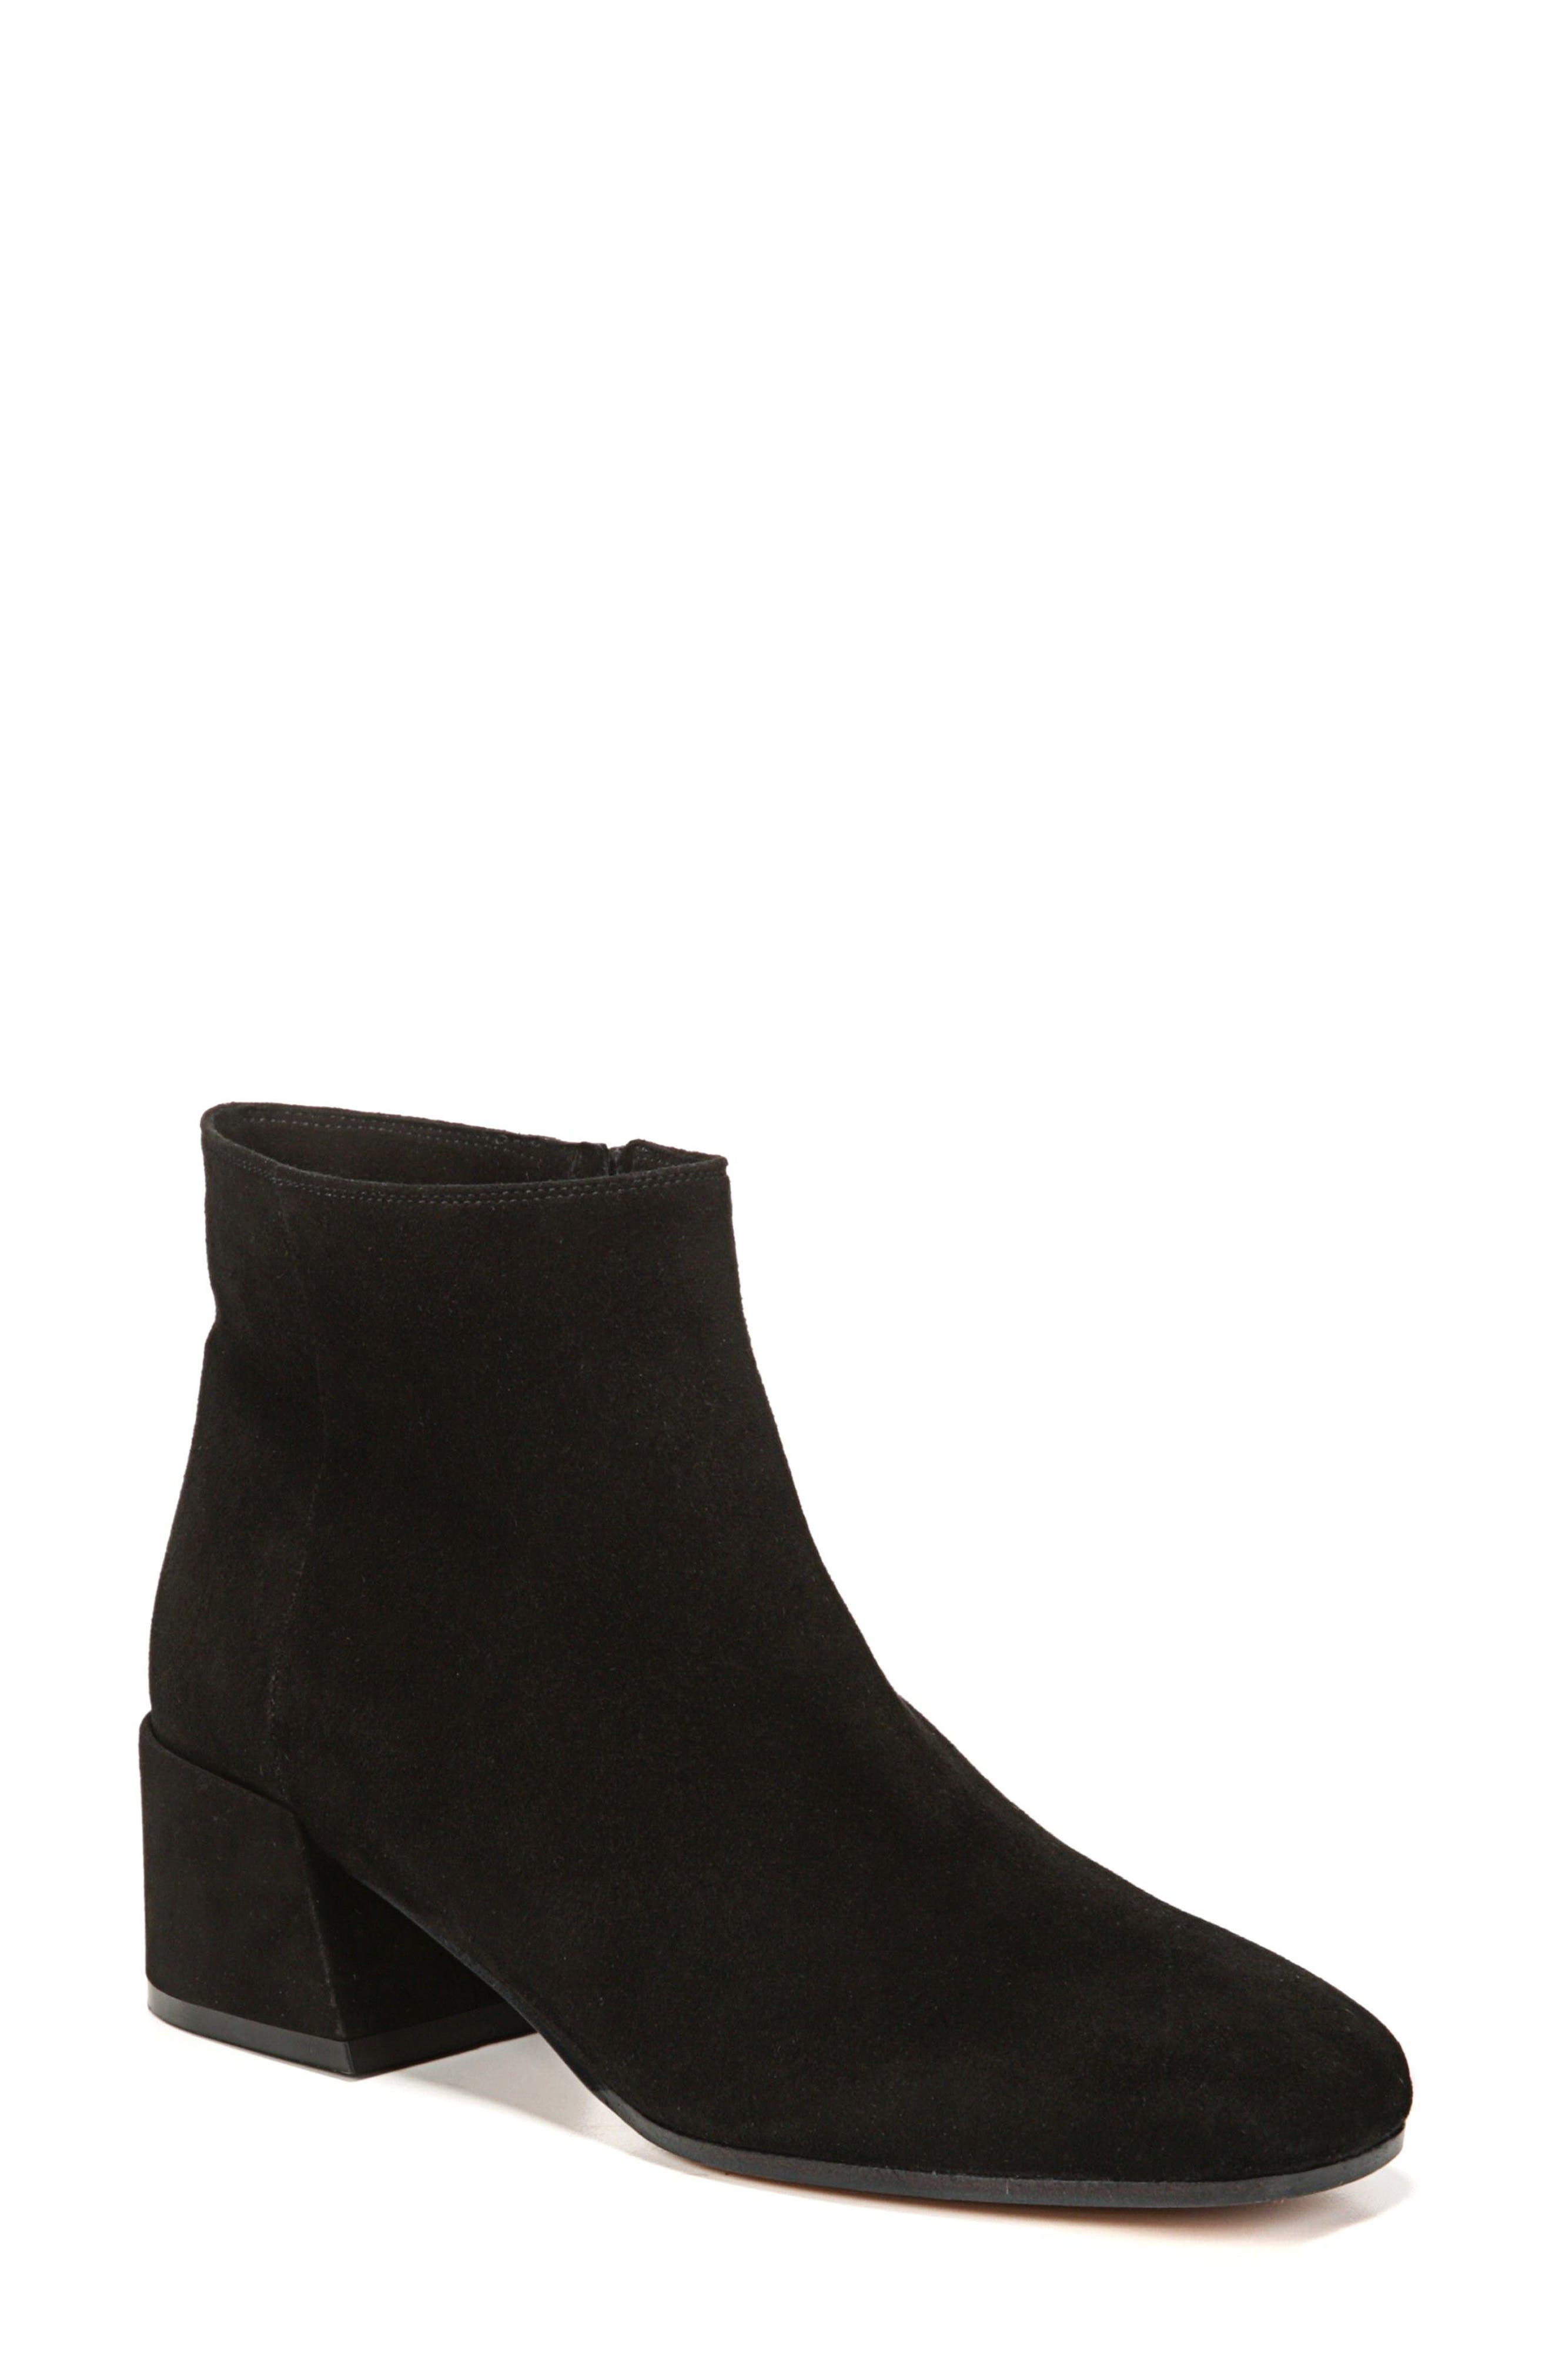 Ostend Bootie,                             Main thumbnail 1, color,